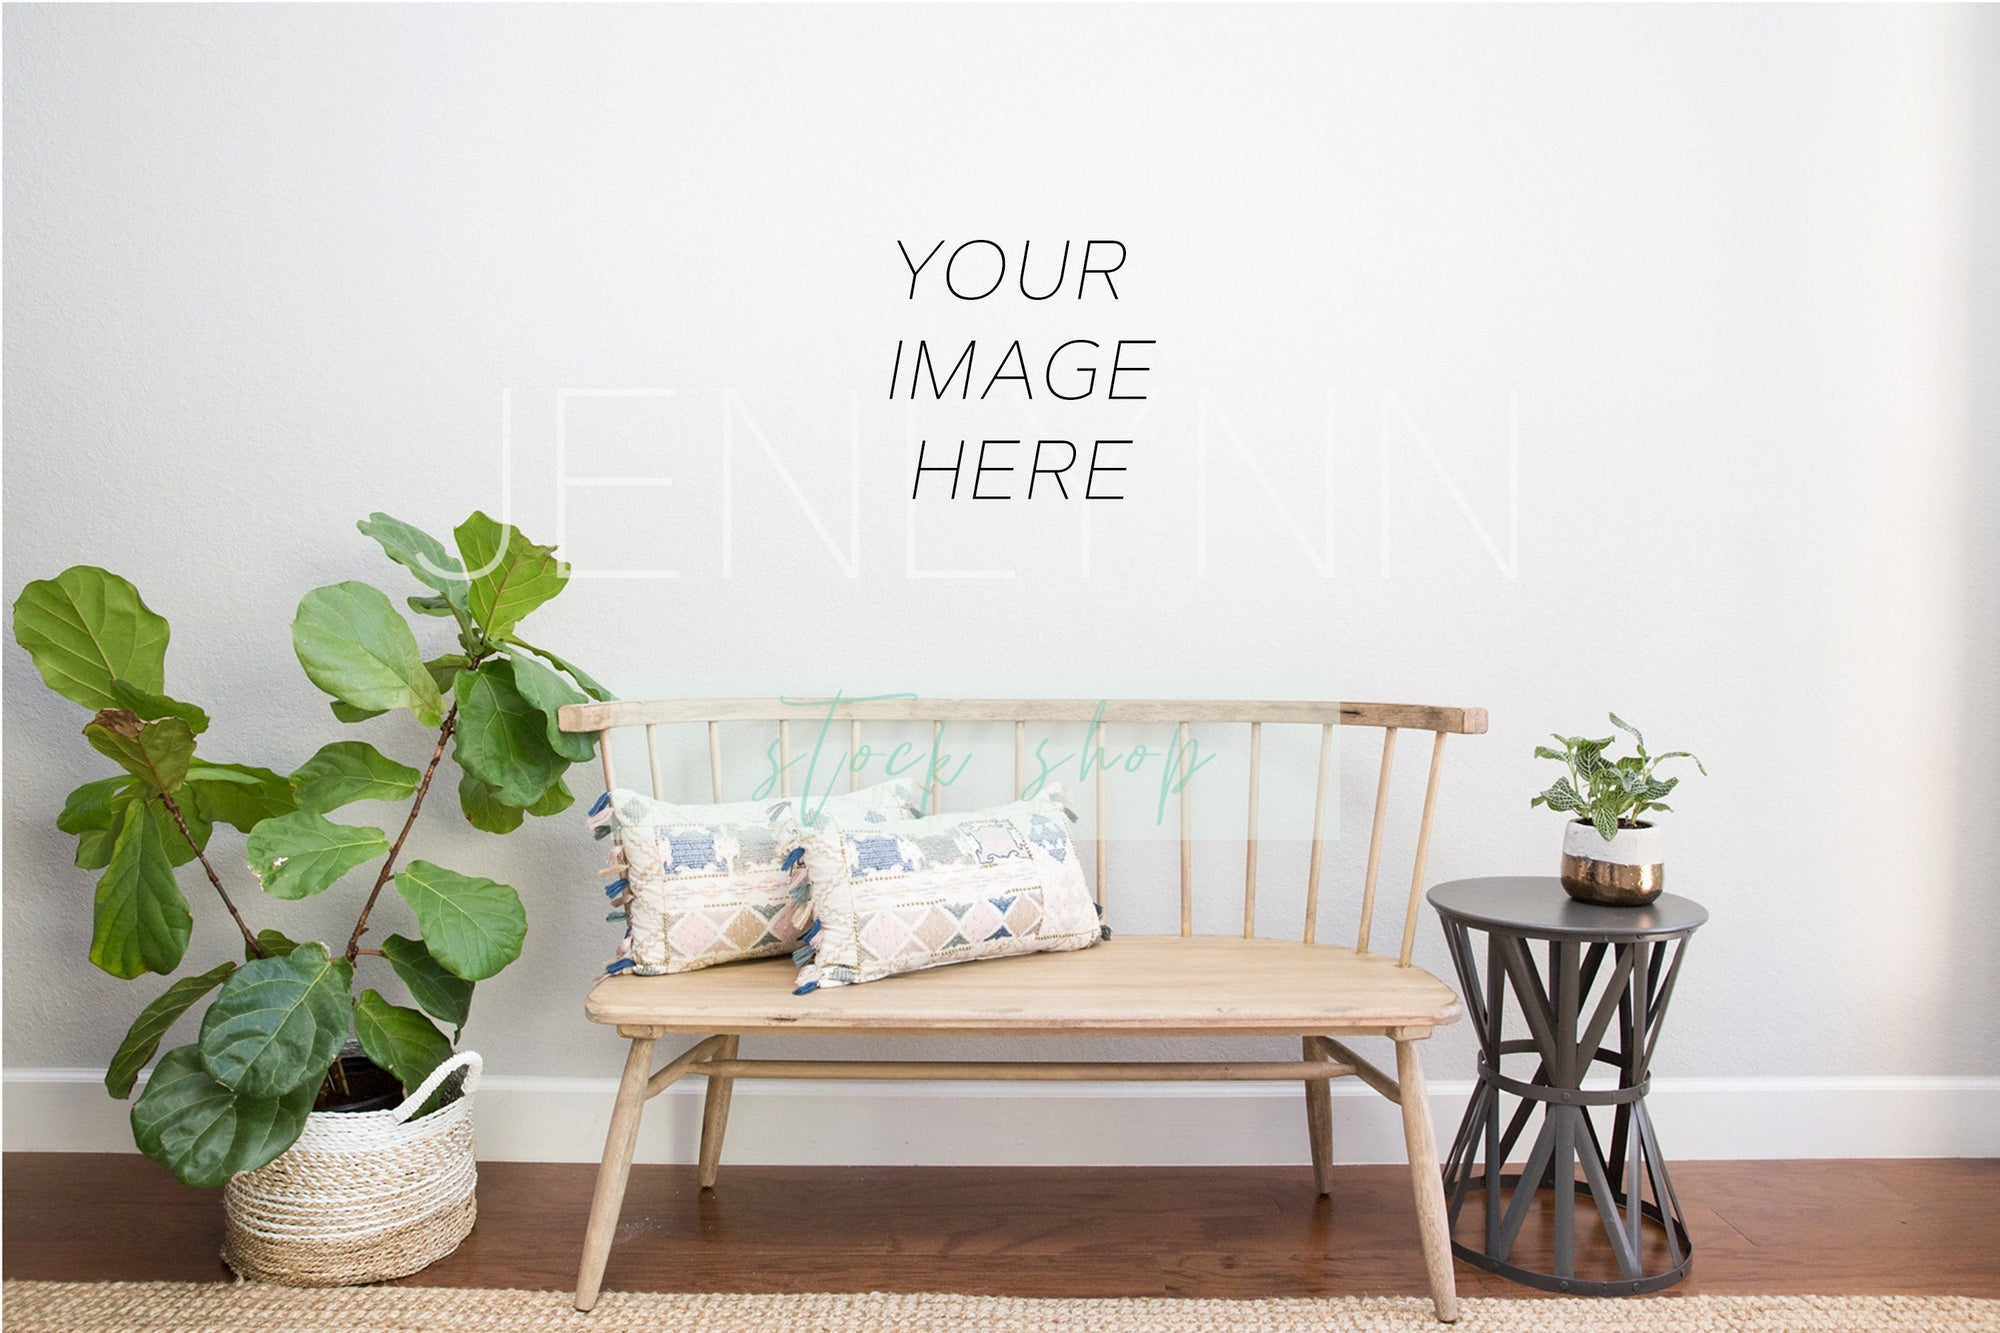 Blank Wall Mockup Bench in Foyer #23